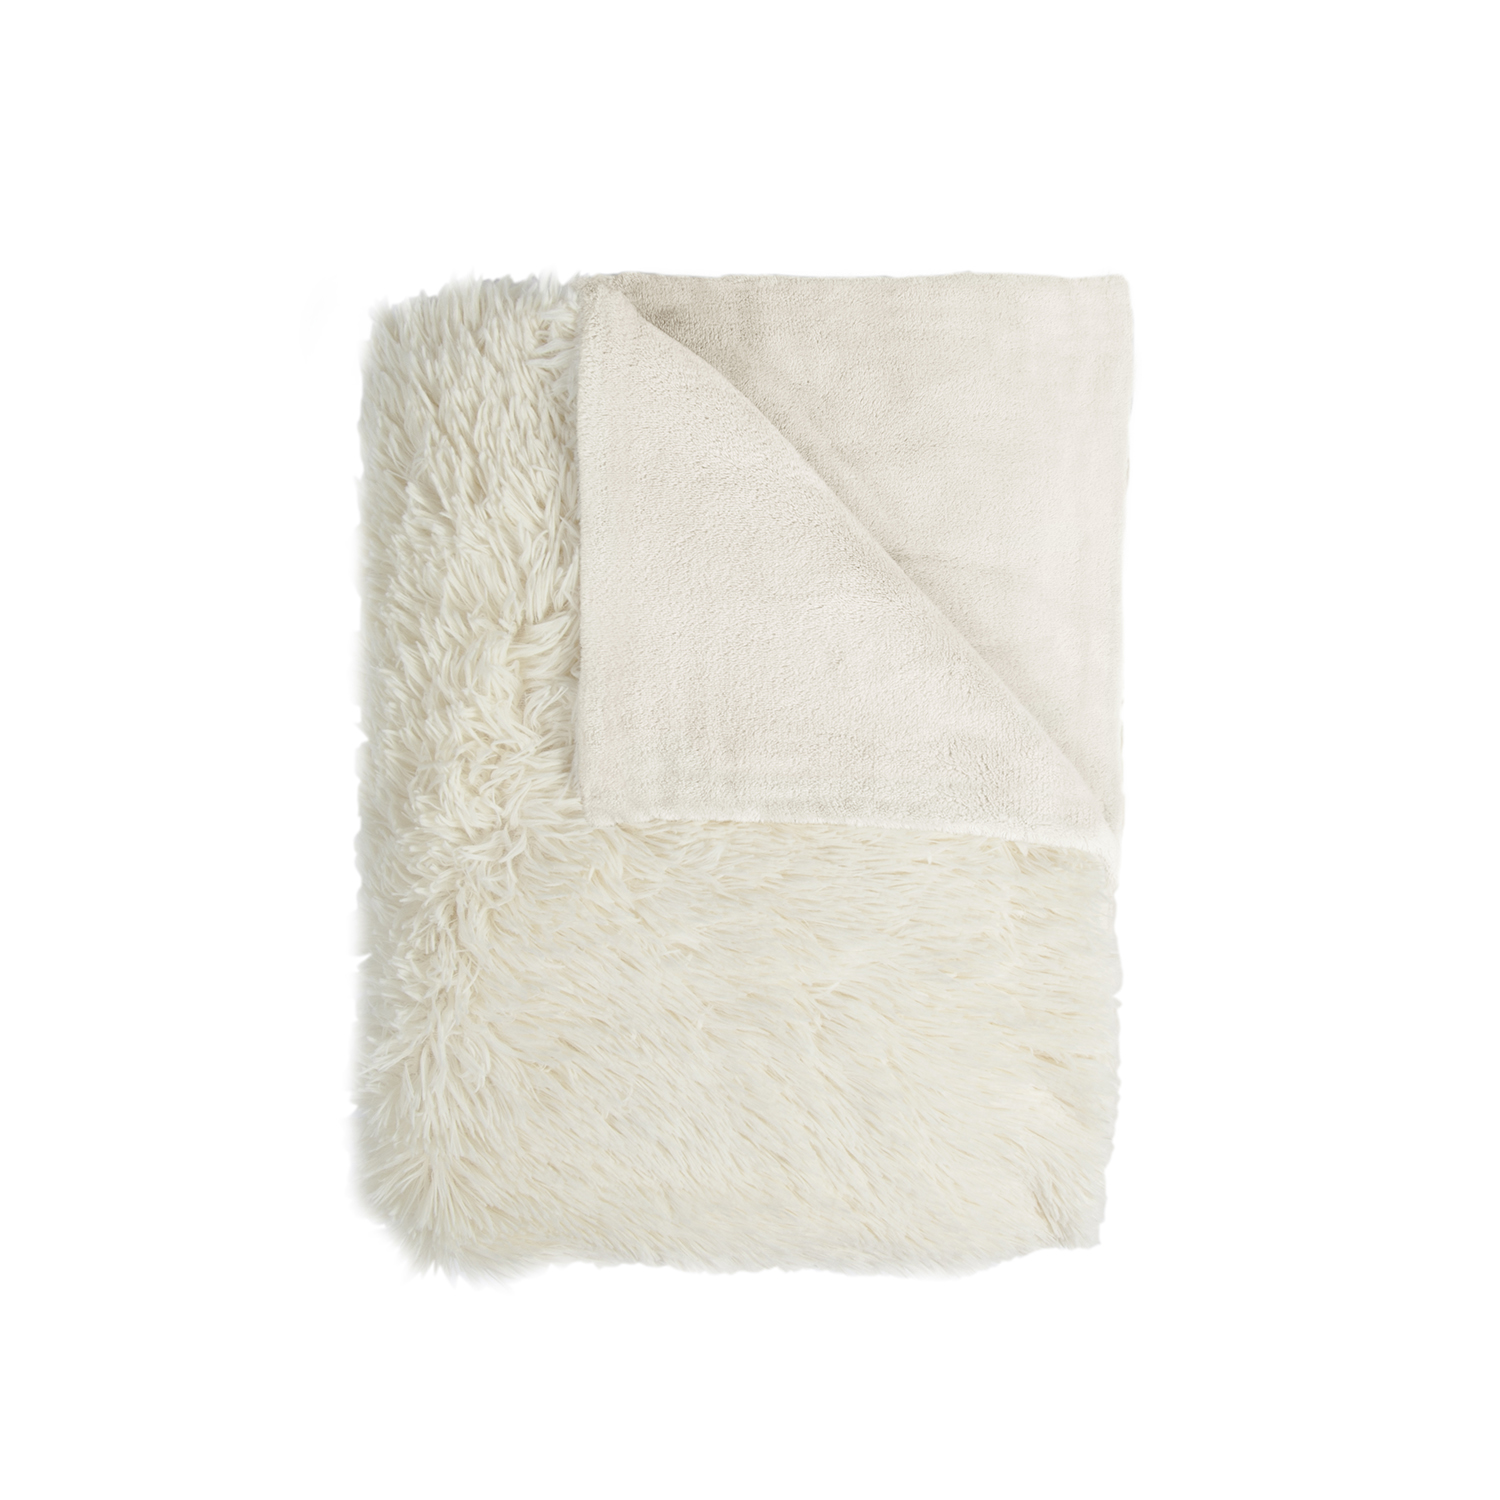 Image of Mistral Shaggy Fuzzy Throw, Beige